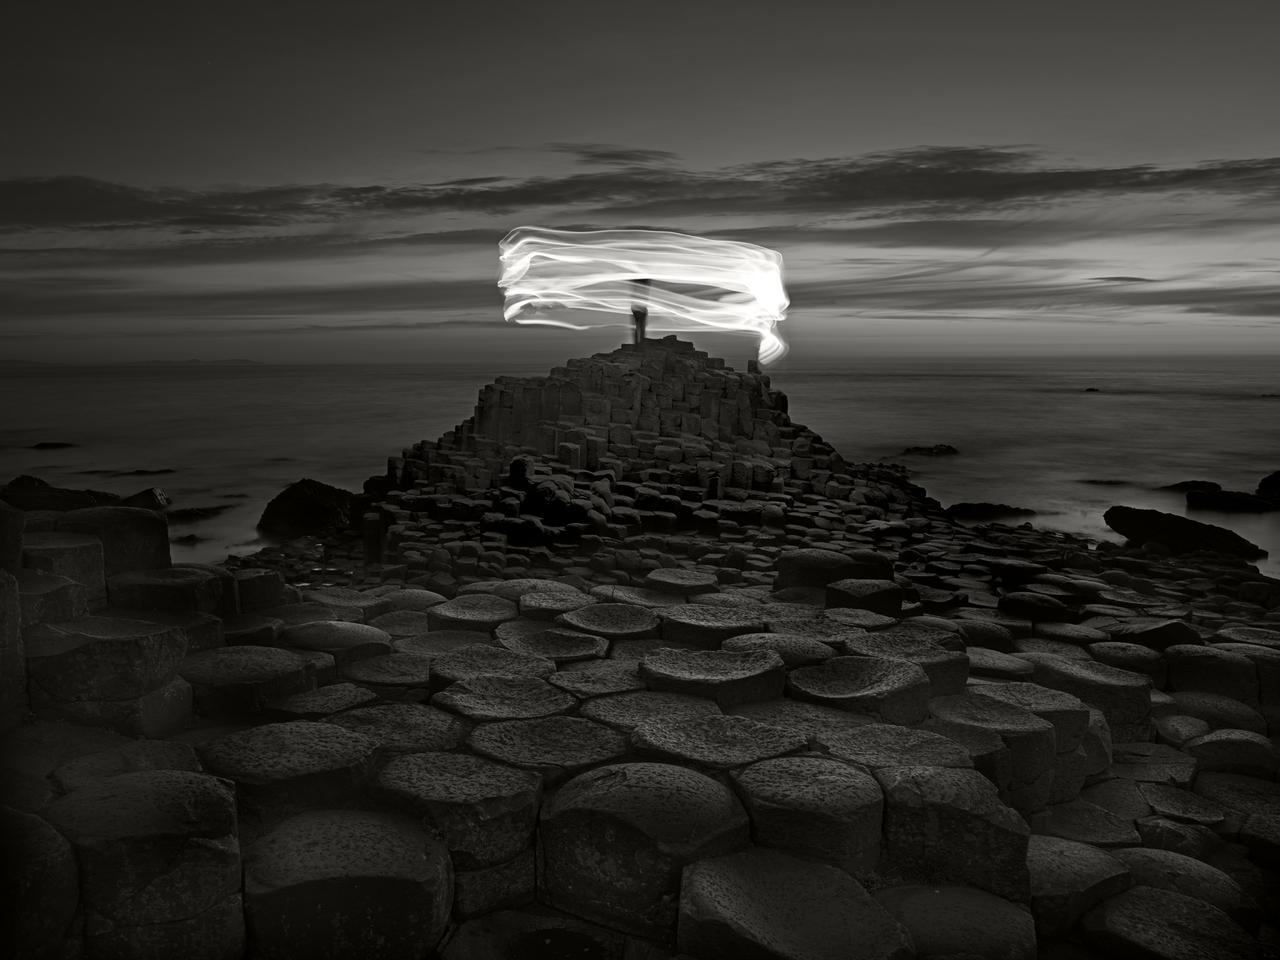 3rd Place / Oneshot : Movement/Fine Art. Taken in Northern Ireland at the Giant's Causeway, an area of about 40,000 interlocking basalt columns